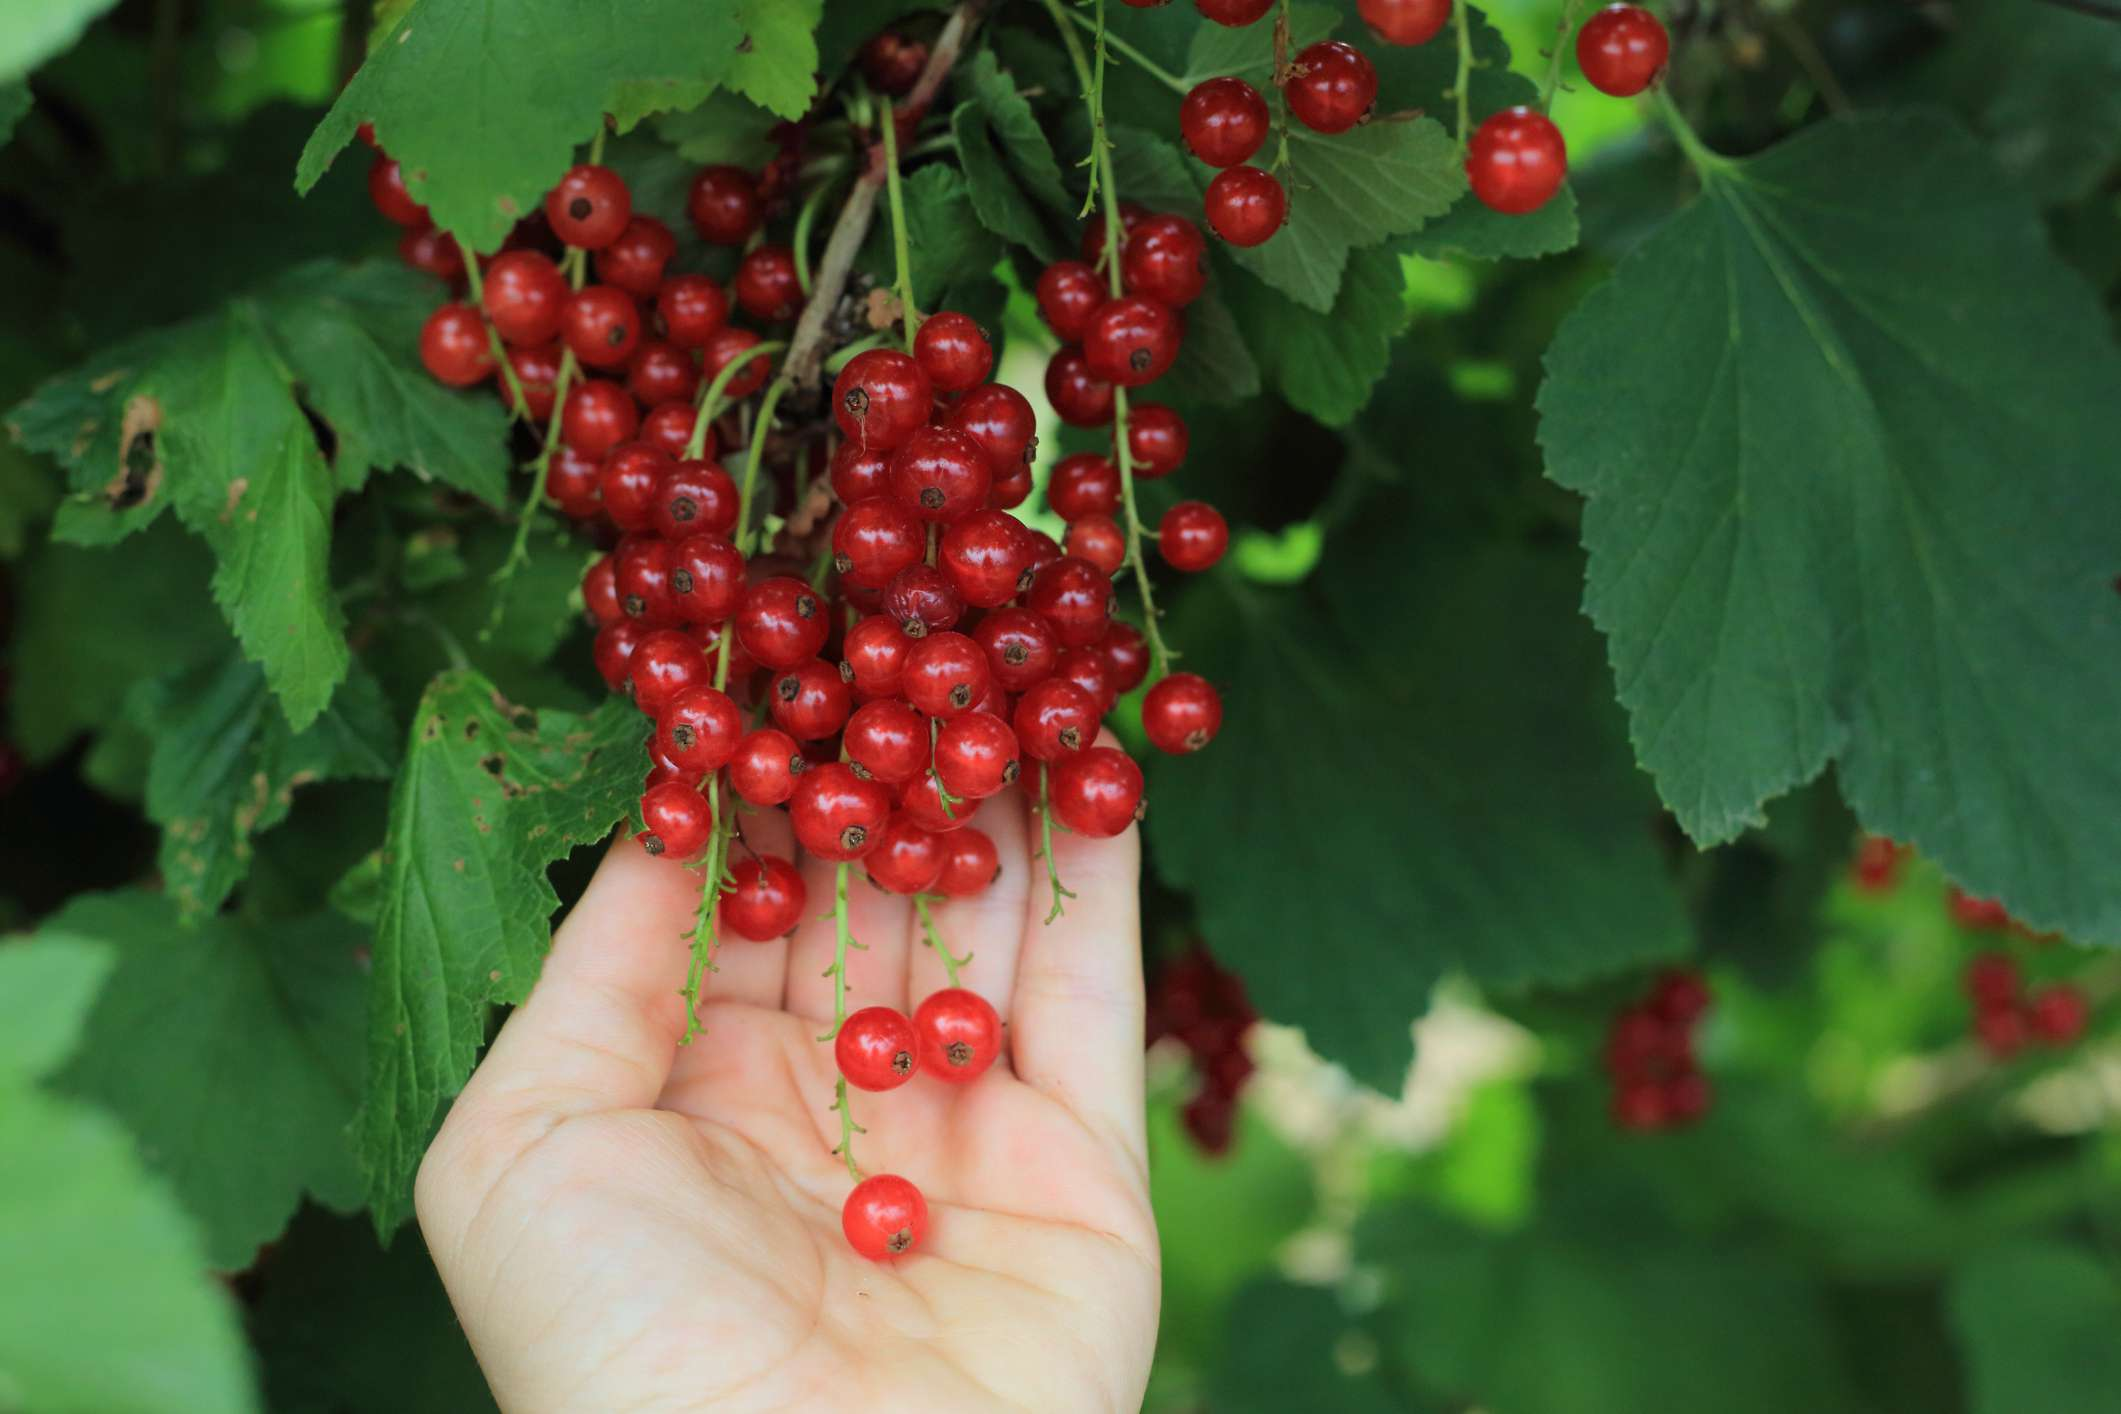 When harvesting red currants, pick the entire cluster